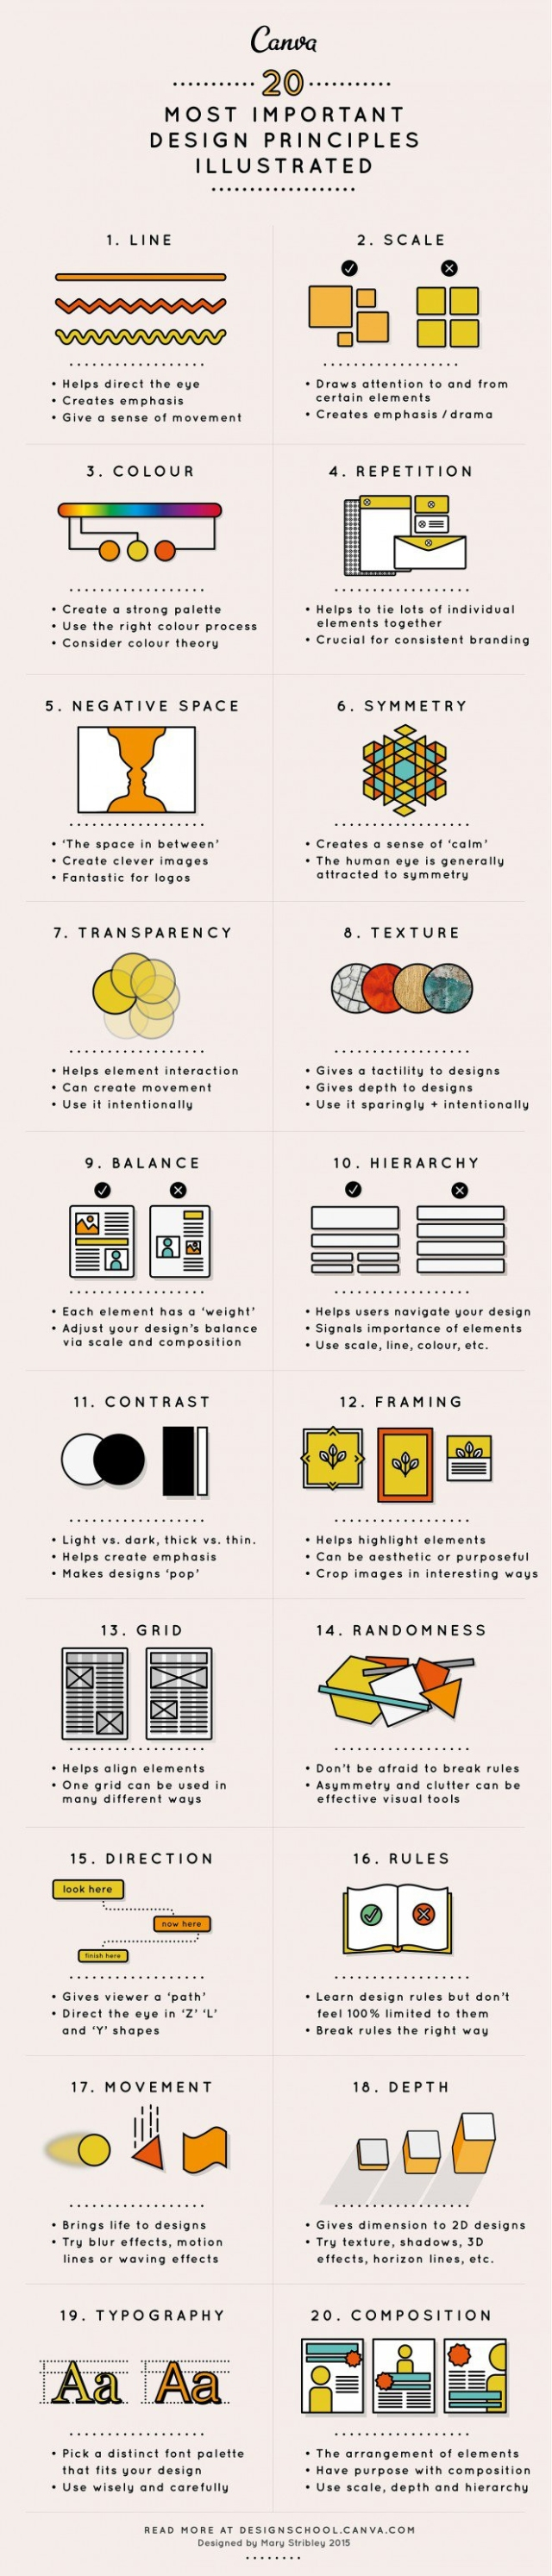 20-basic-design-principles-to-follow-for-a-successful-business-website